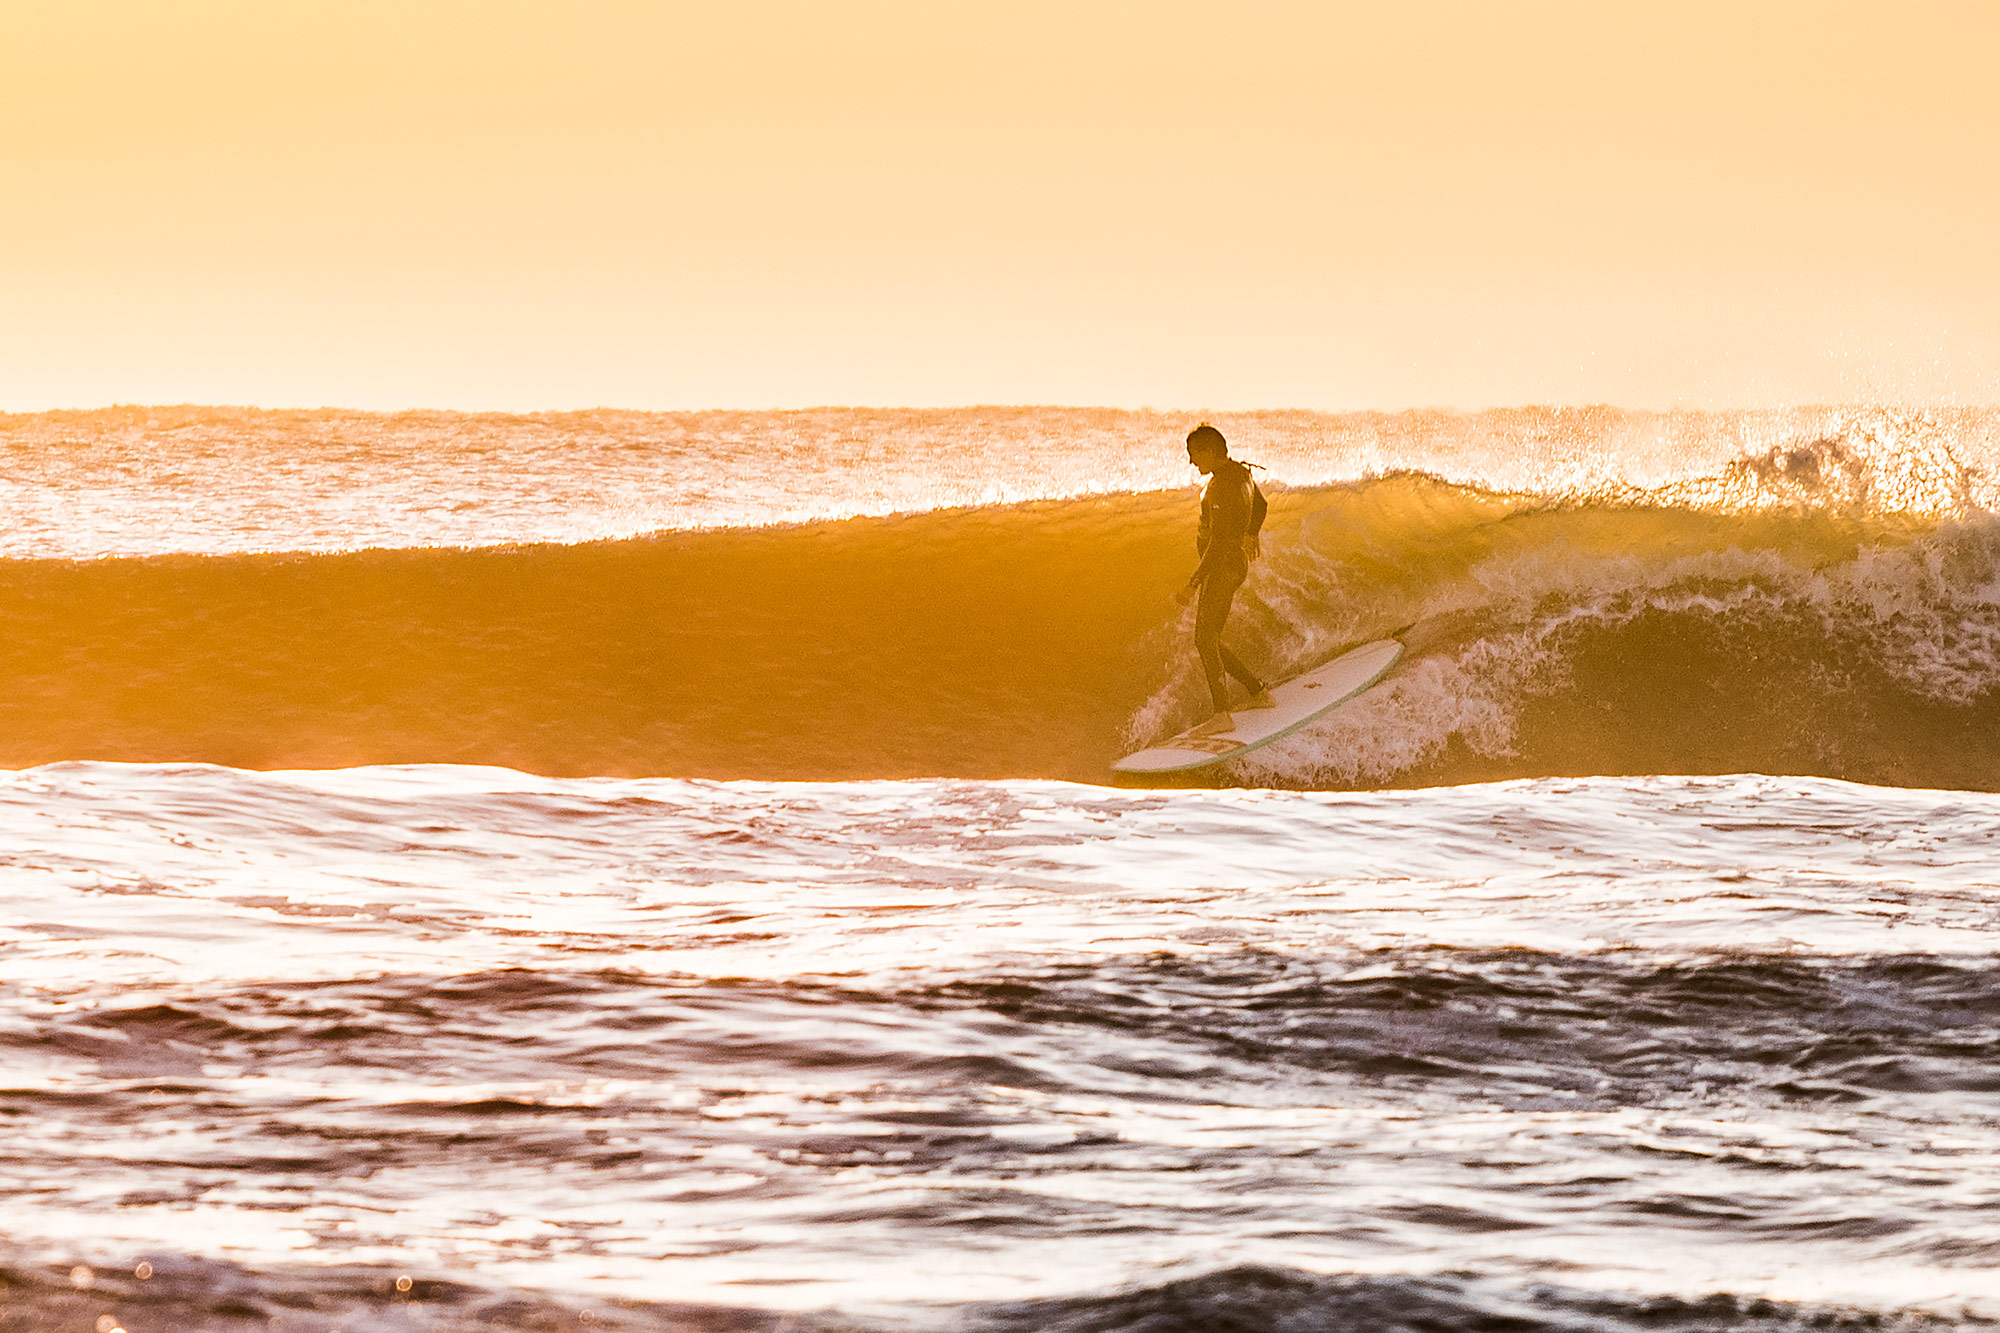 Texas surfer on a wave at sunrise on longboard